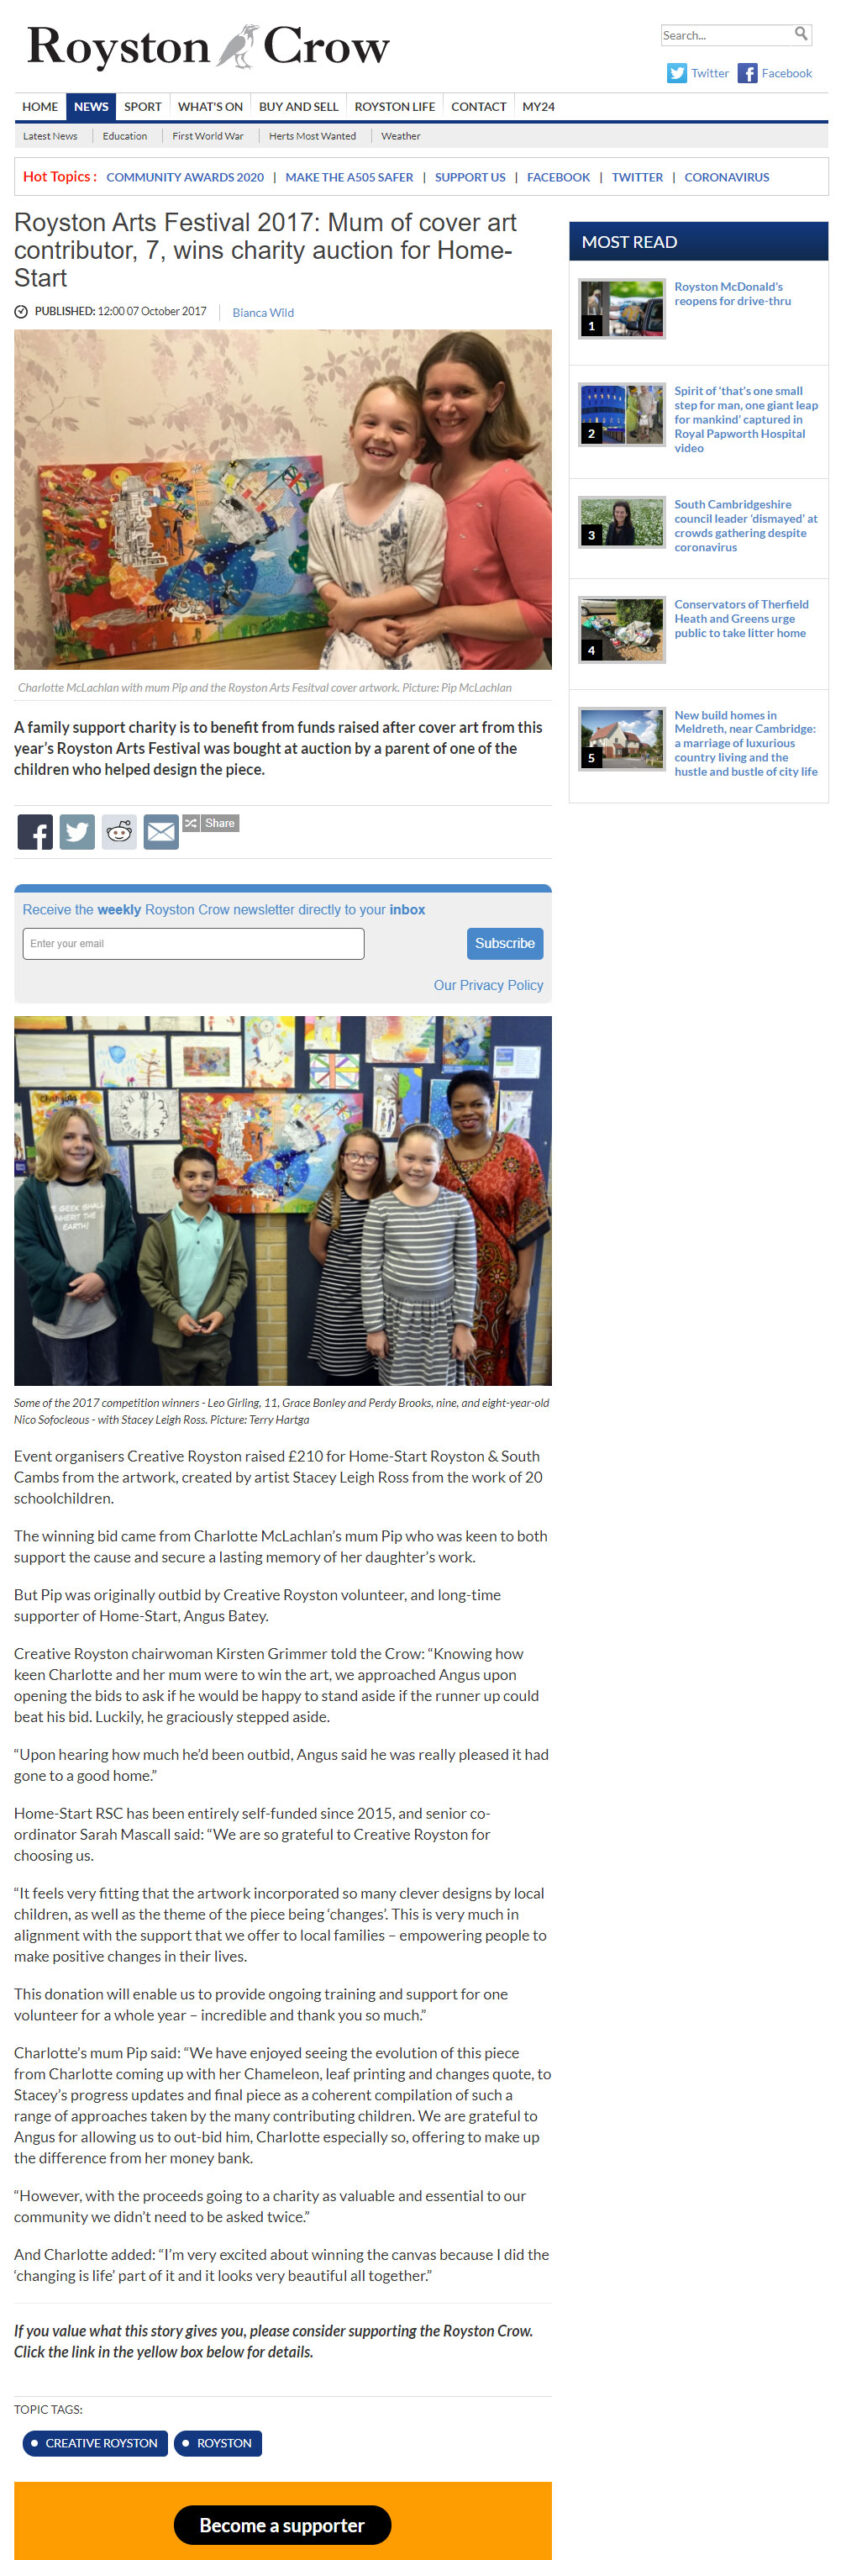 Royston article about the auction winners of By Leigh's mixed media art for Royston Arts Festival programme cover